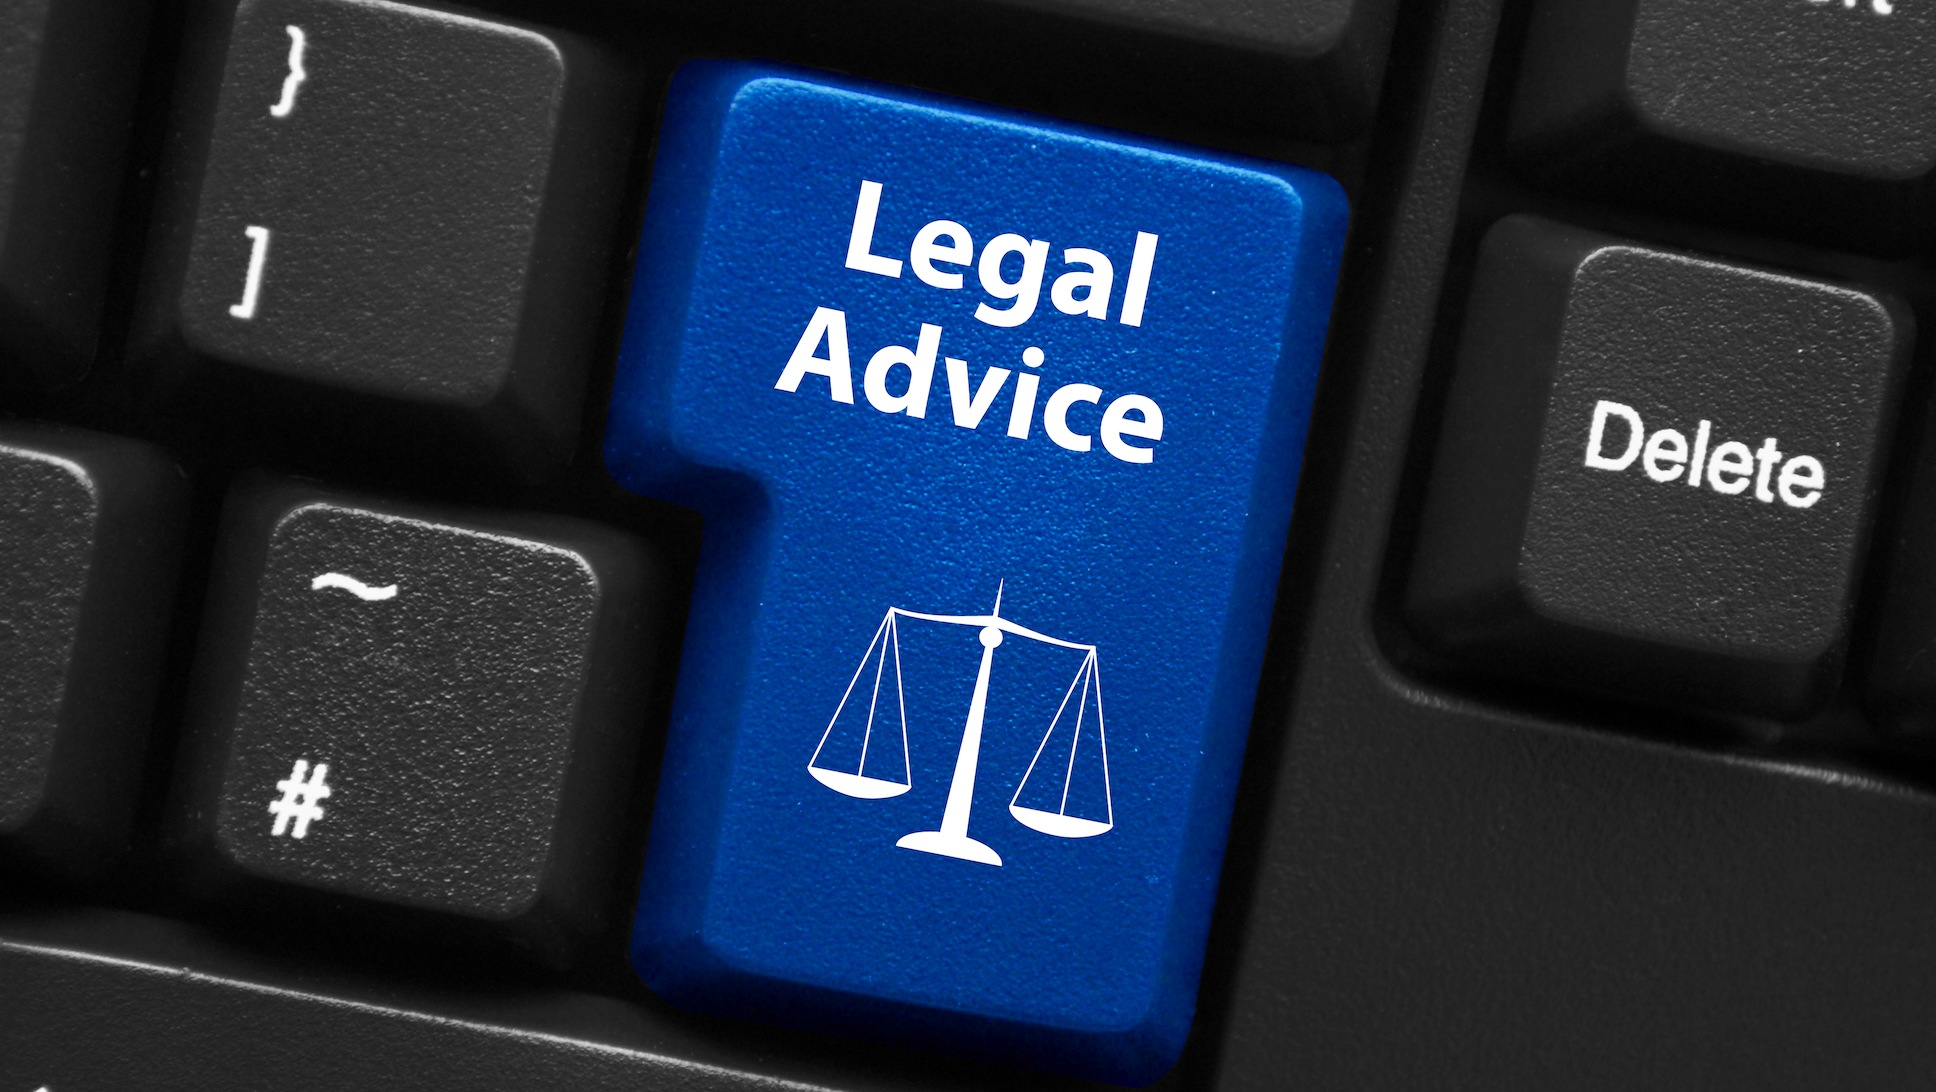 Guideline Personal Injury Attorney Parsippany Uses For Getting The Best Compensation